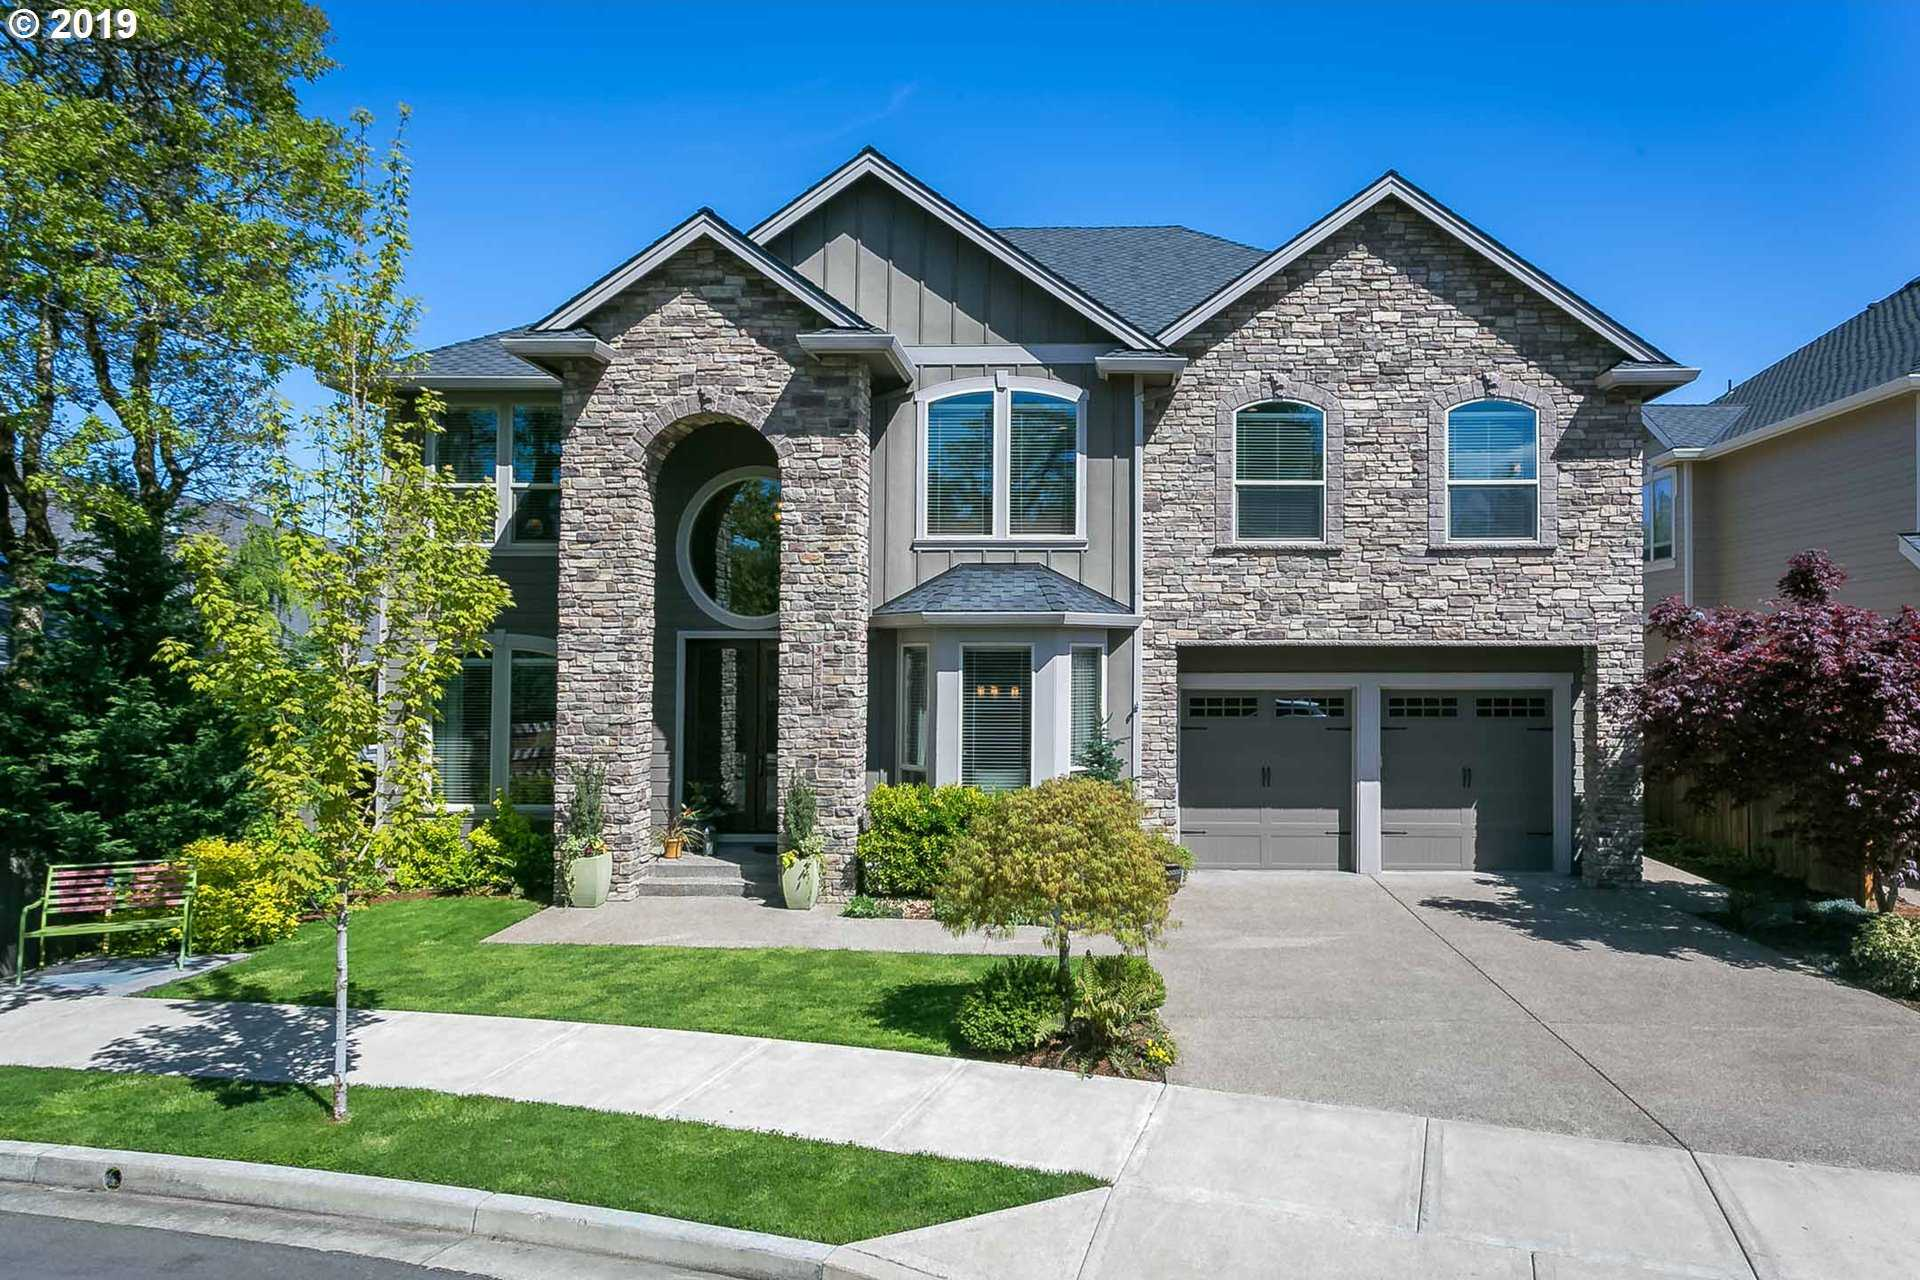 $825,000 - 5Br/5Ba -  for Sale in Tualatin